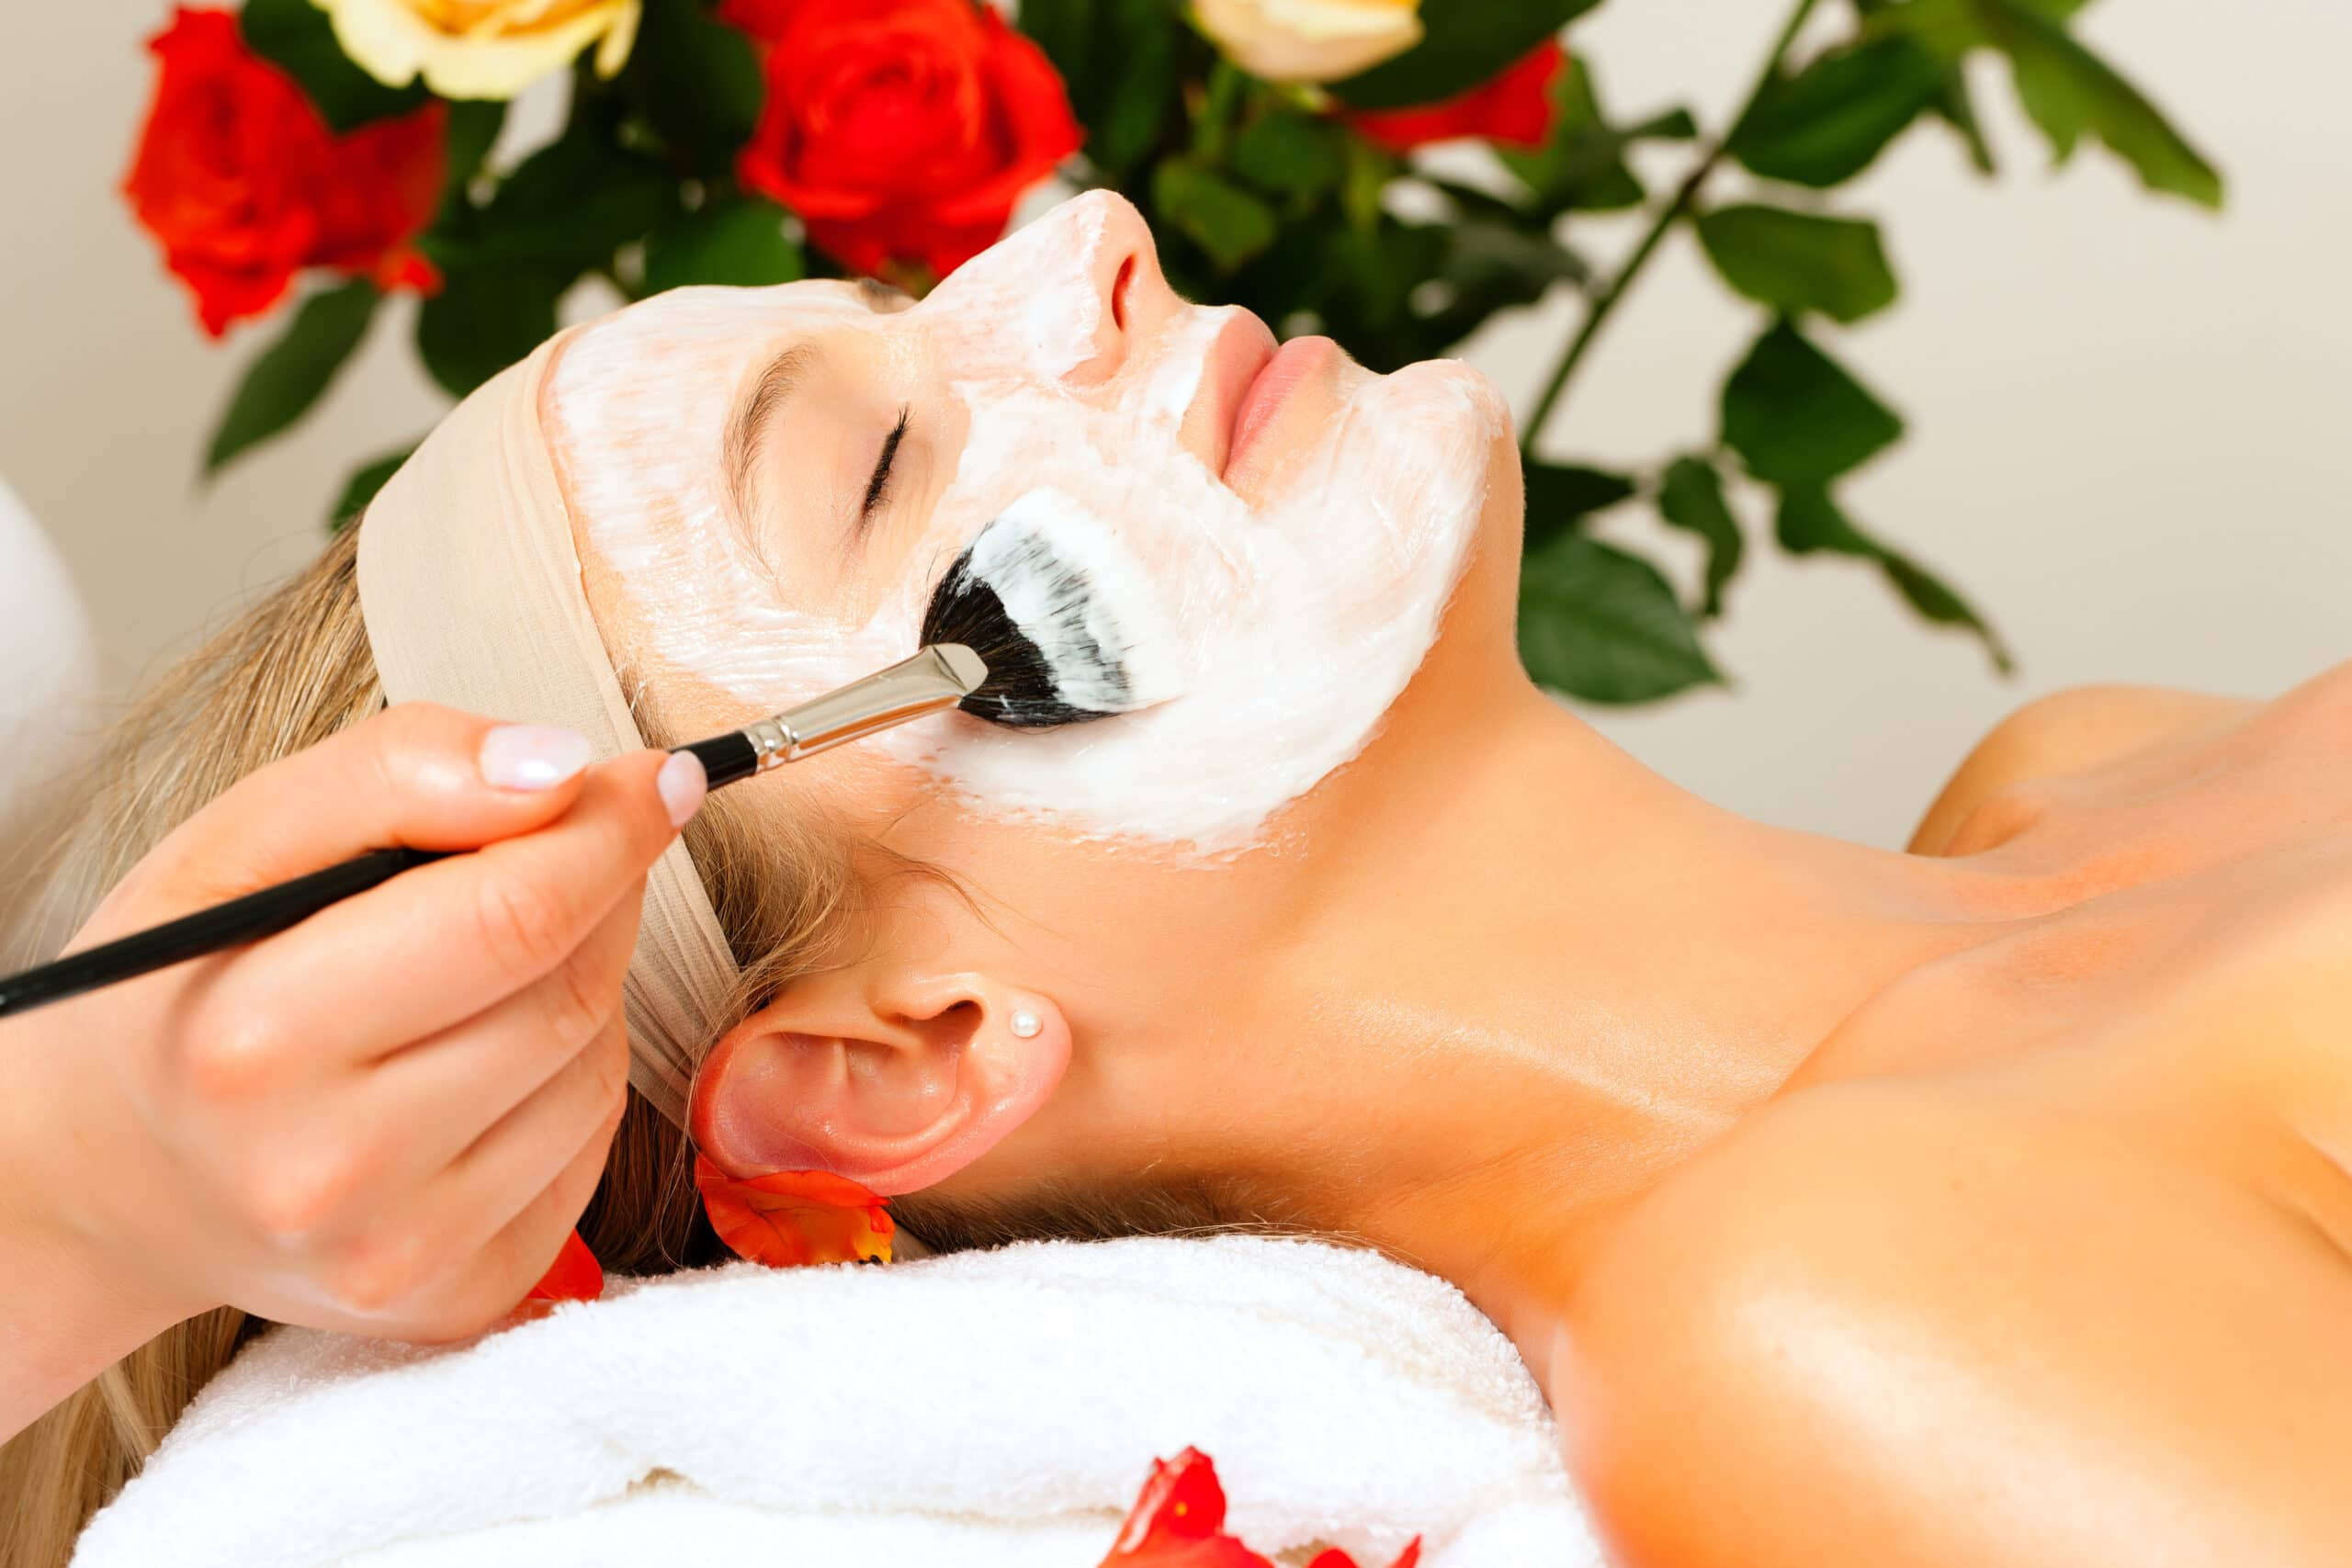 Washington D.C. Facial Artist Courses